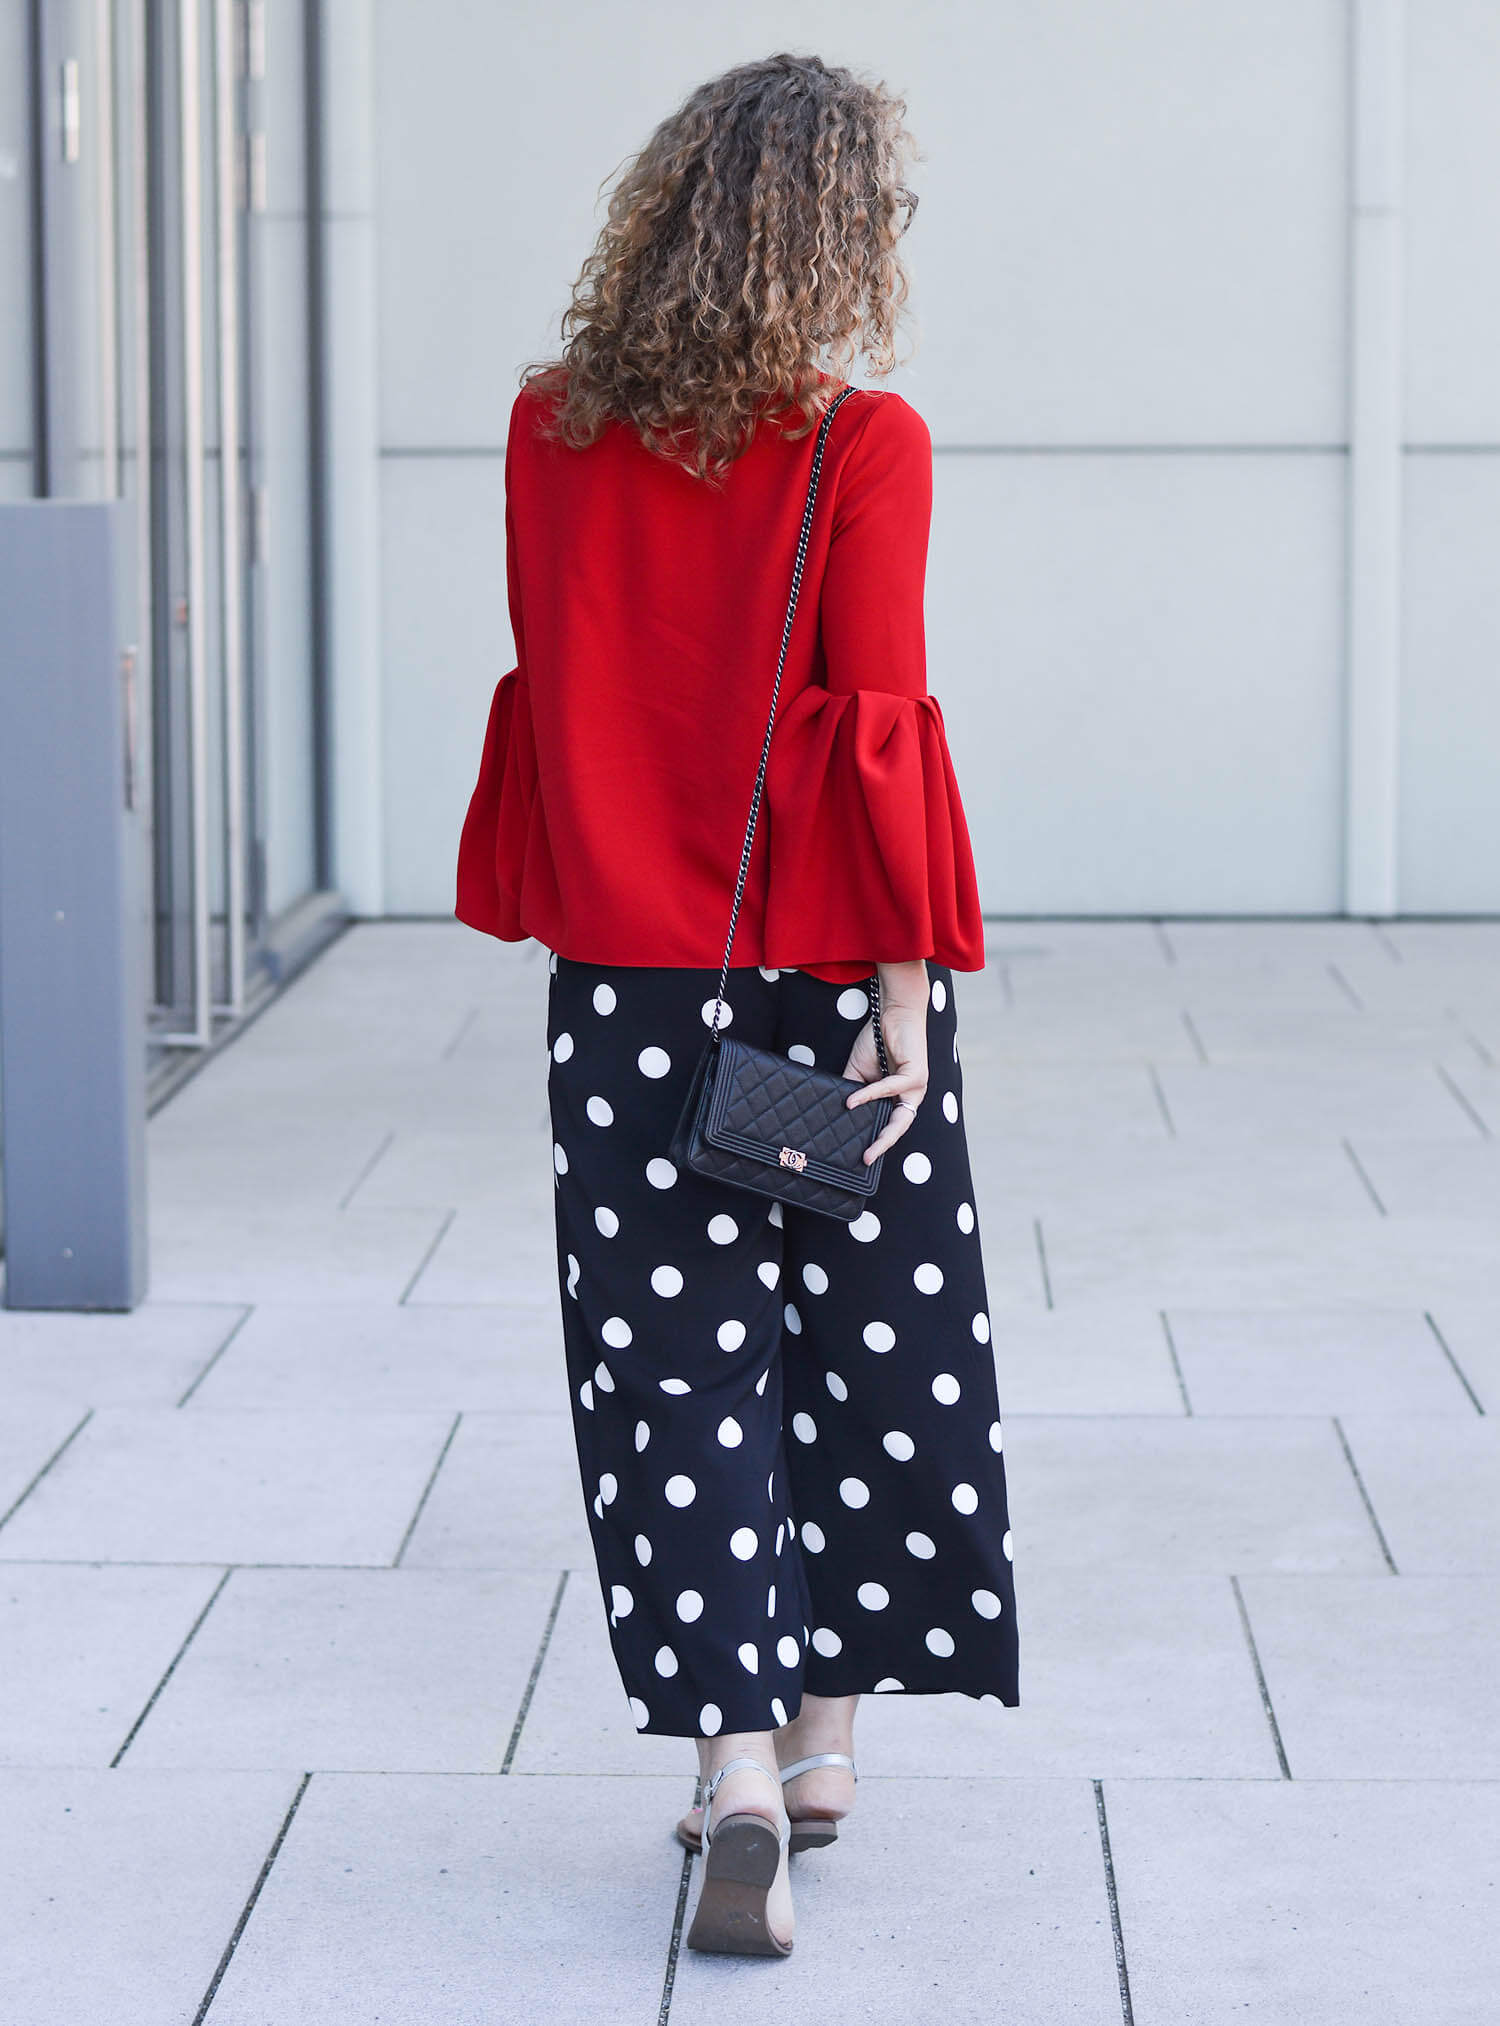 Outfit-Zara-Allover-with-Polka-Dots-Culotte-Zara-and-Red-Top-with-Pleats-kationette-fashionblogger-NRW